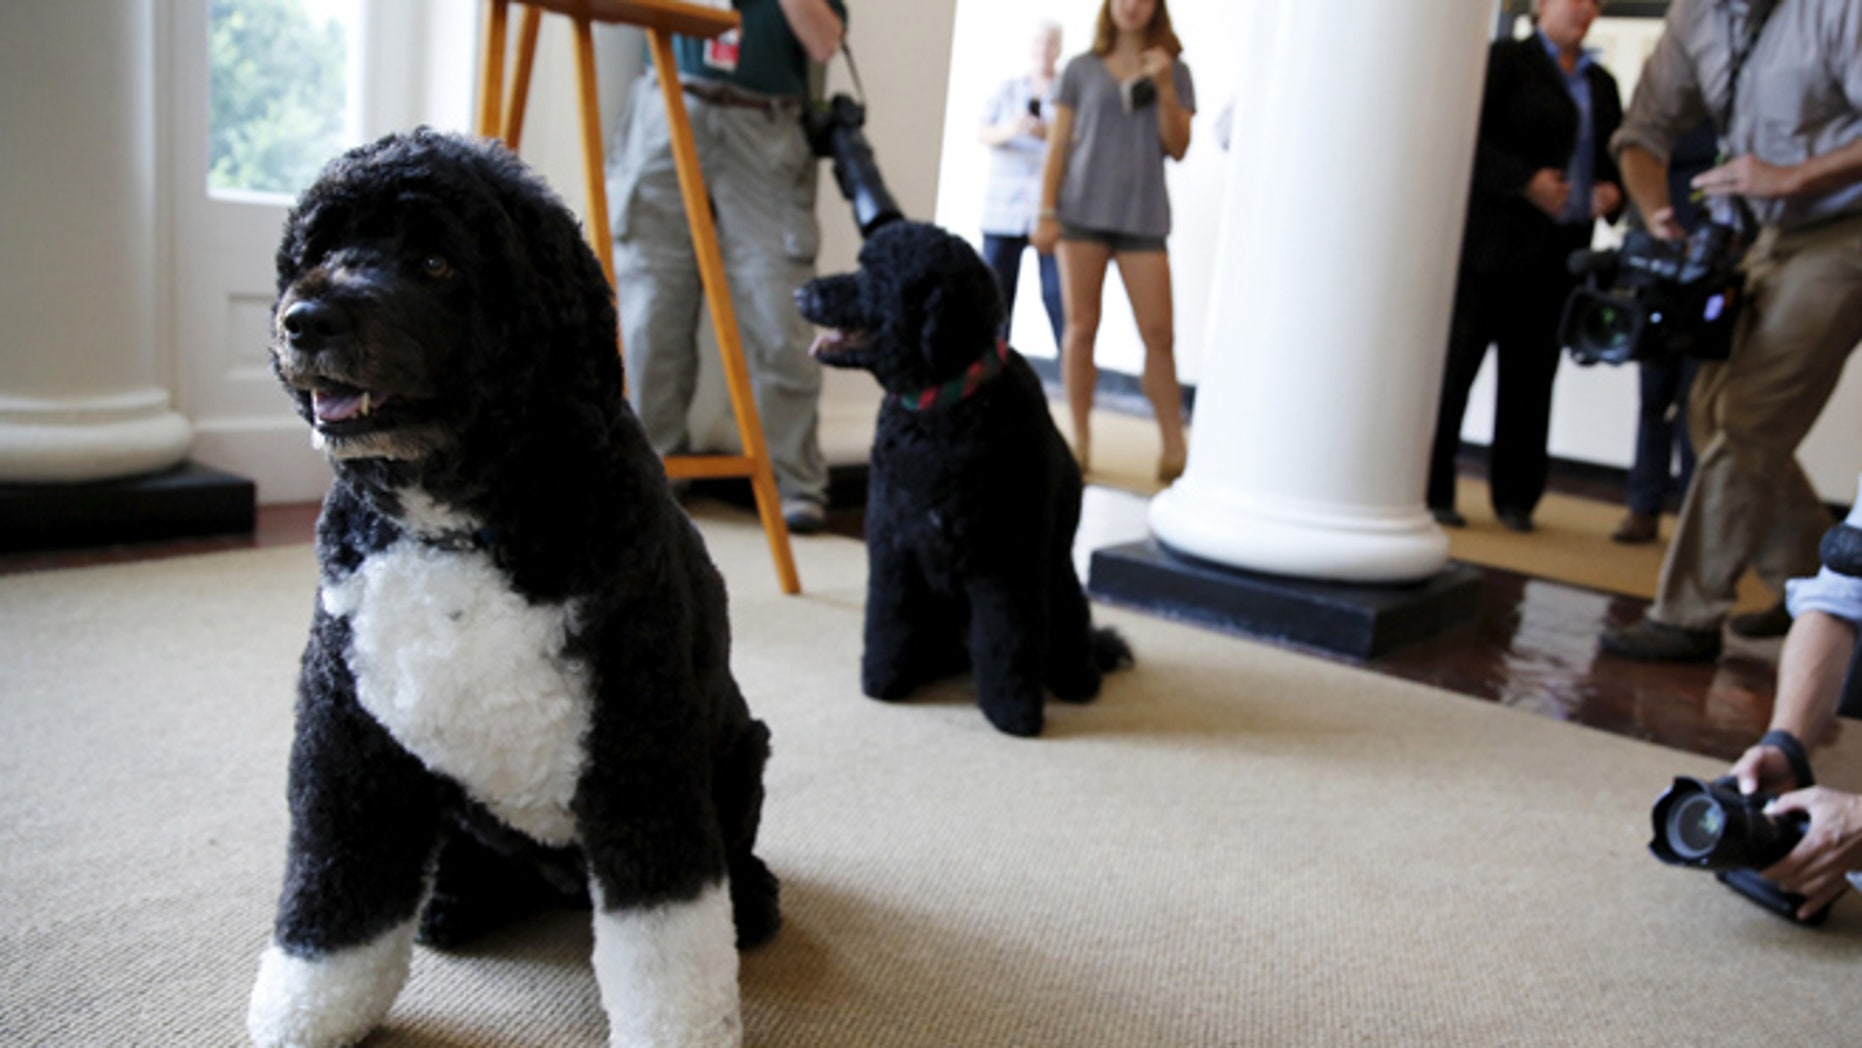 July 1, 2015: Obama family dogs Bo (L) and Sunny as visitors can now take photos during a tour of the White House in Washington.